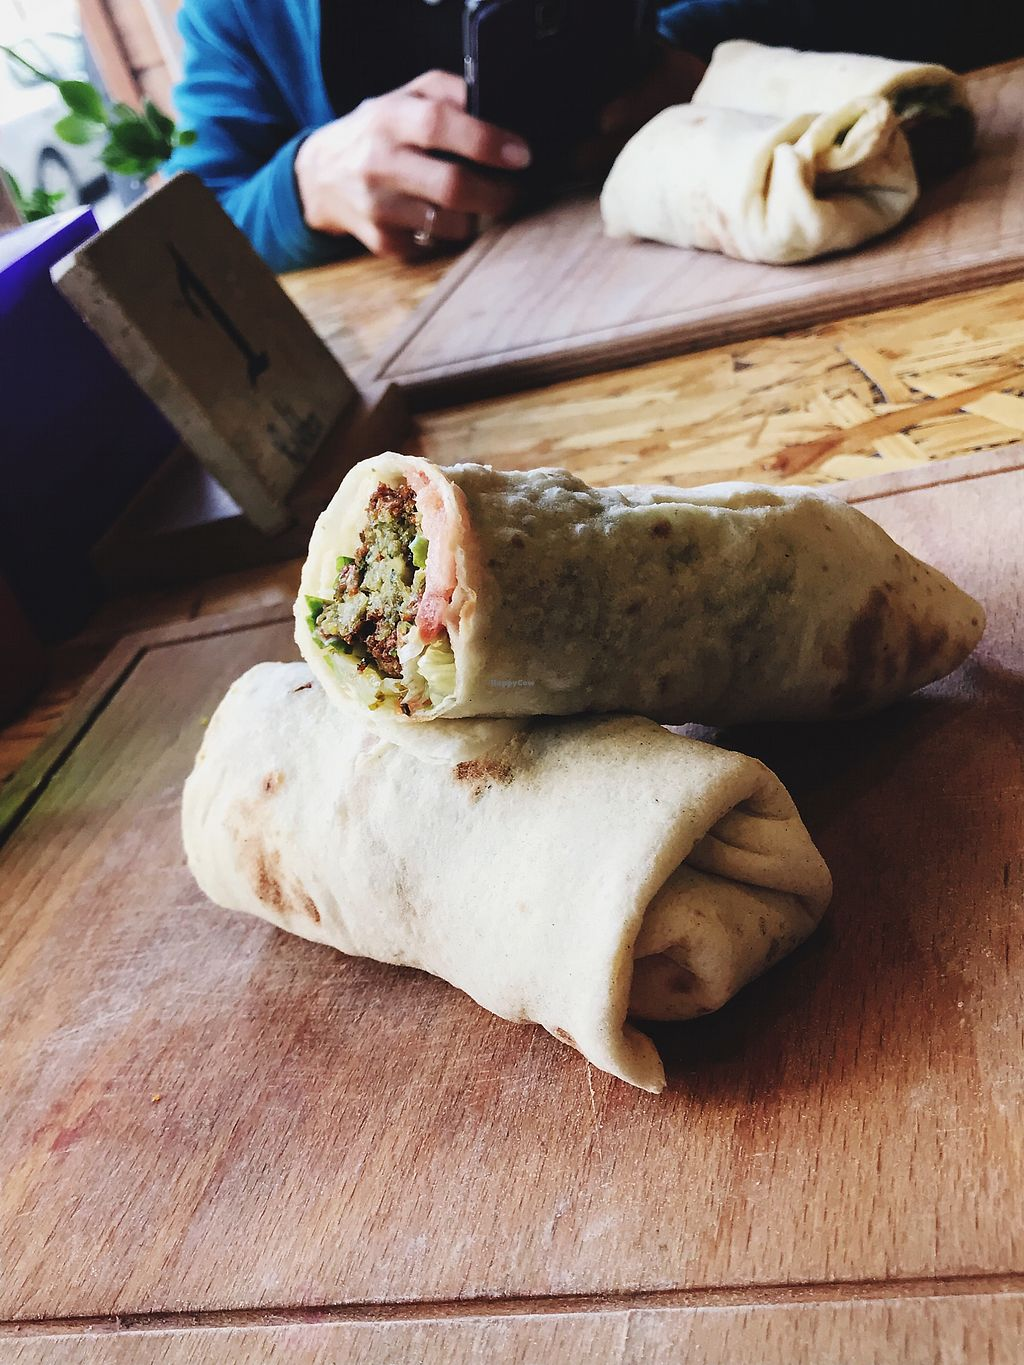 """Photo of Rokka  by <a href=""""/members/profile/veganoteacher"""">veganoteacher</a> <br/>Falafel Wrap <br/> January 29, 2018  - <a href='/contact/abuse/image/76042/352318'>Report</a>"""